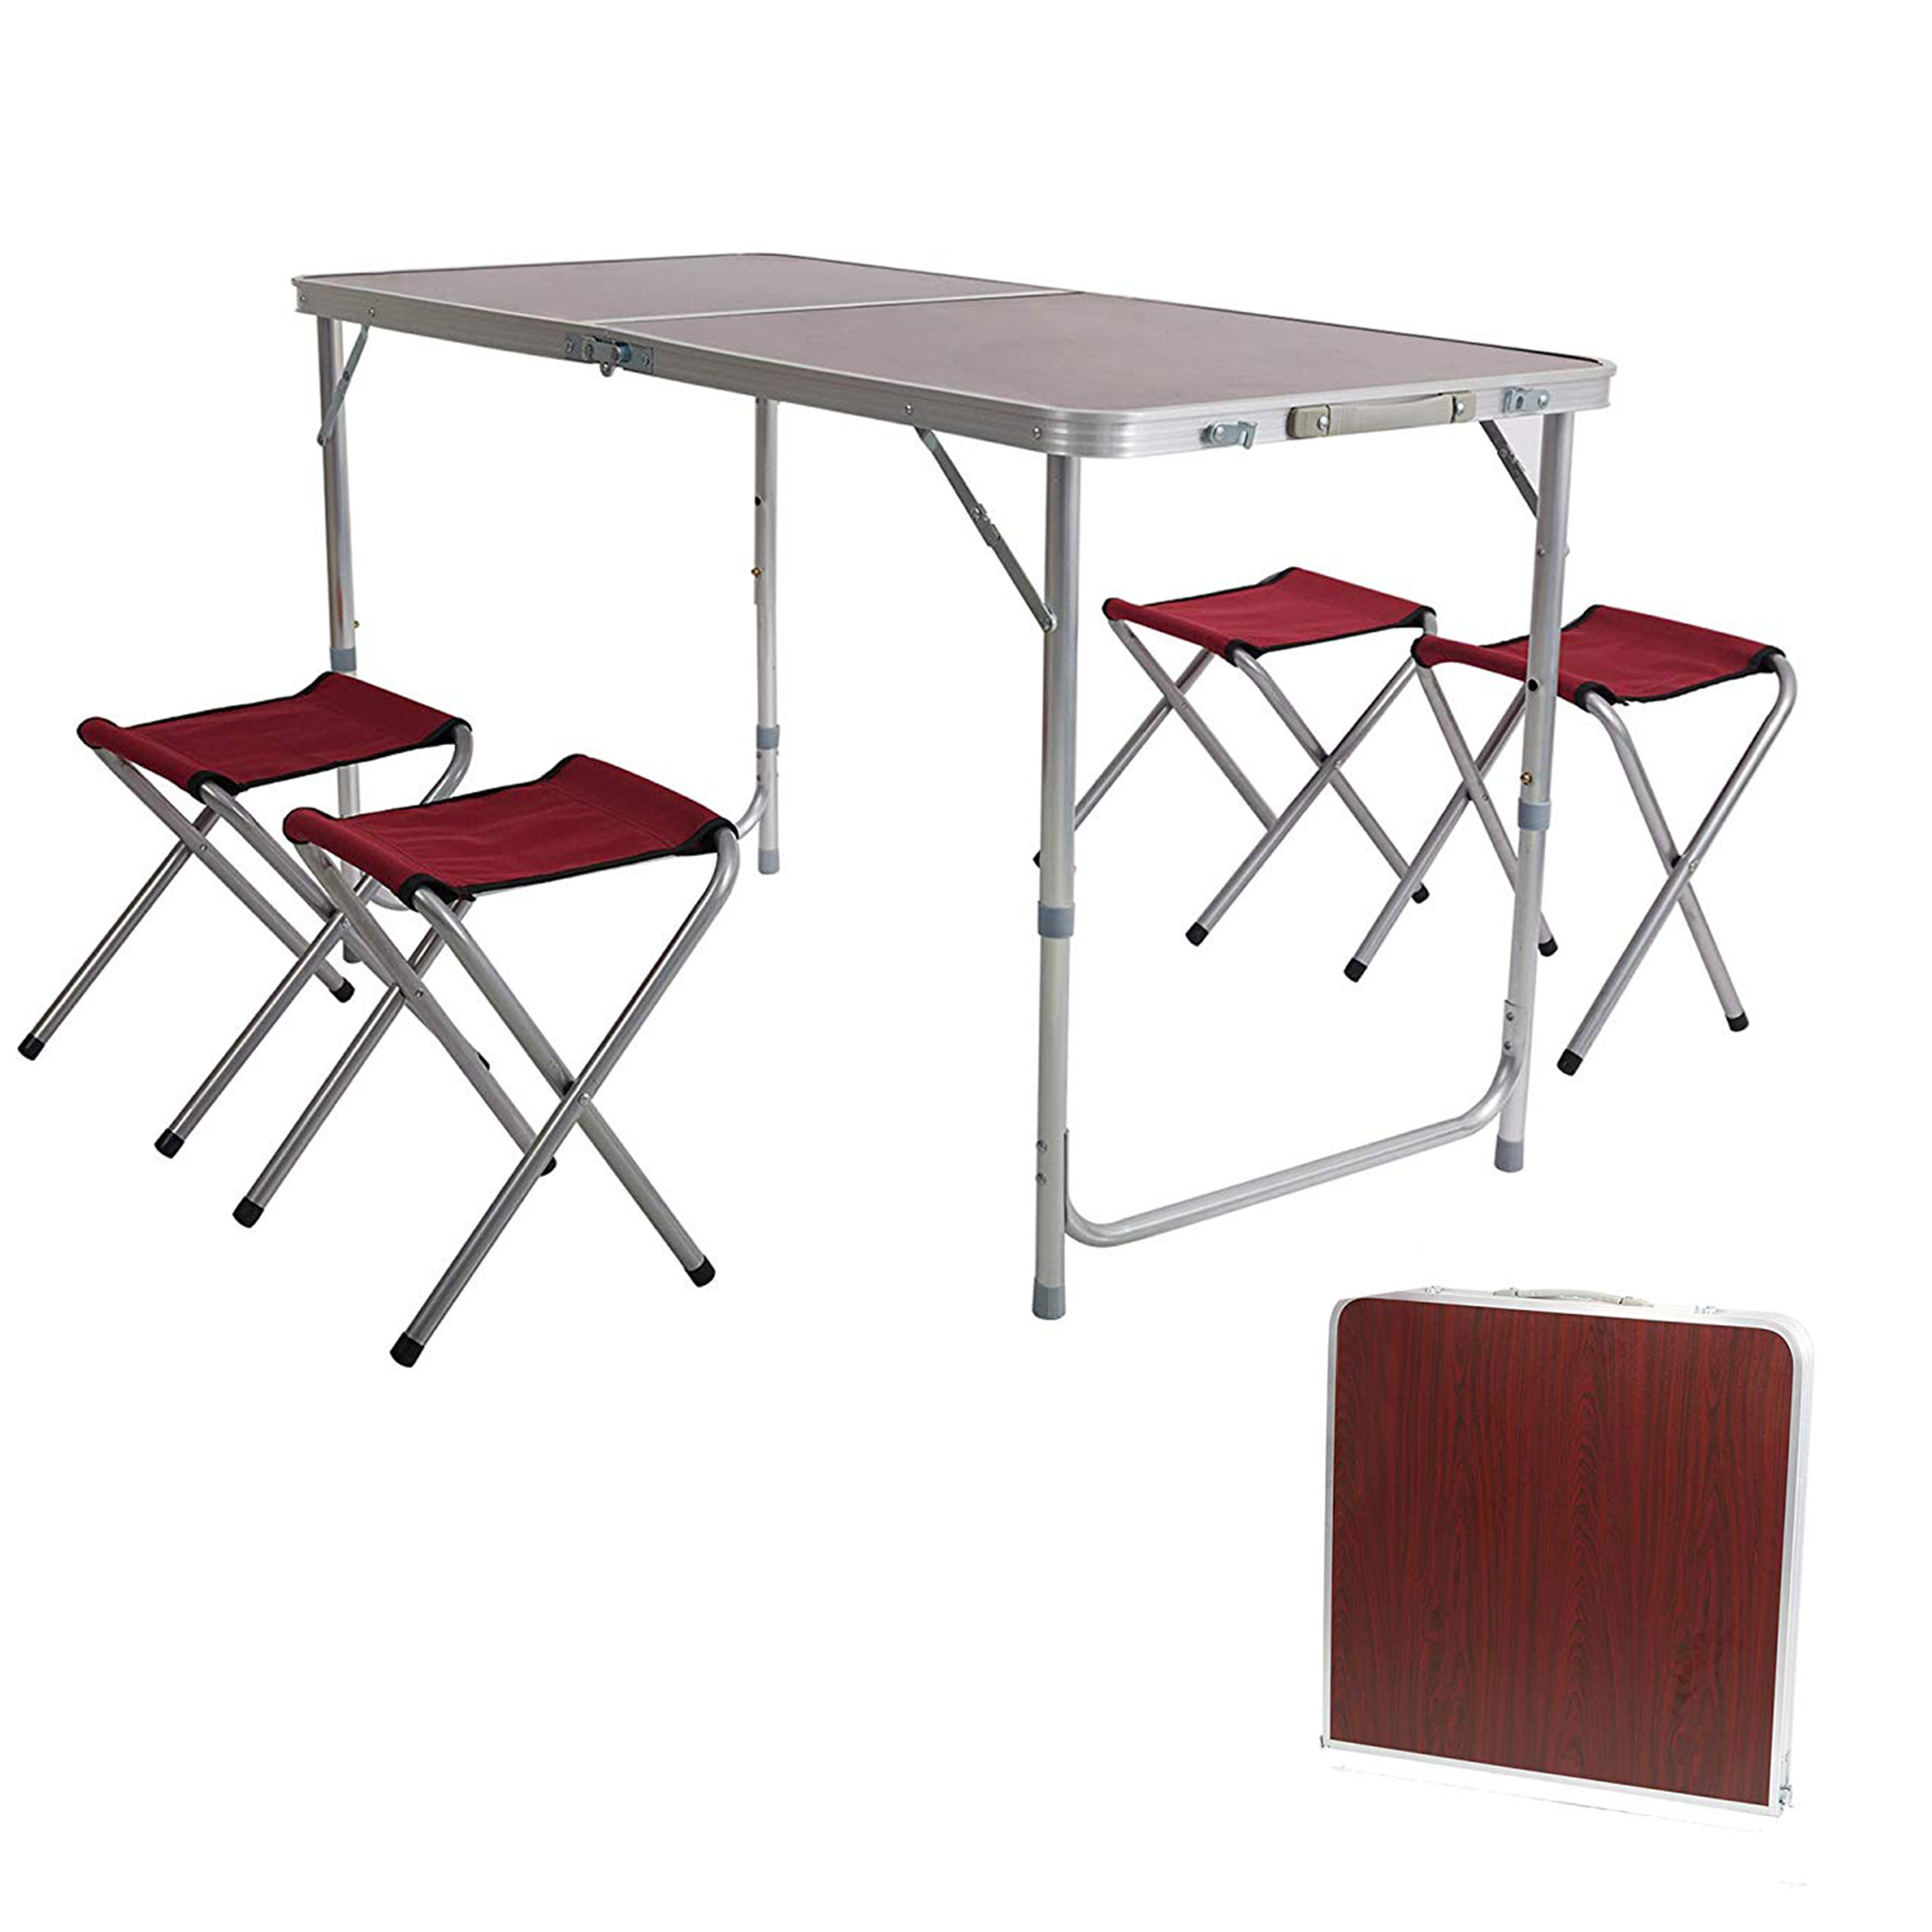 Karmasfar Product Outdoor Folding Camp Table Suitcase Lightweight Height Adjule Portable Foldable Picnic